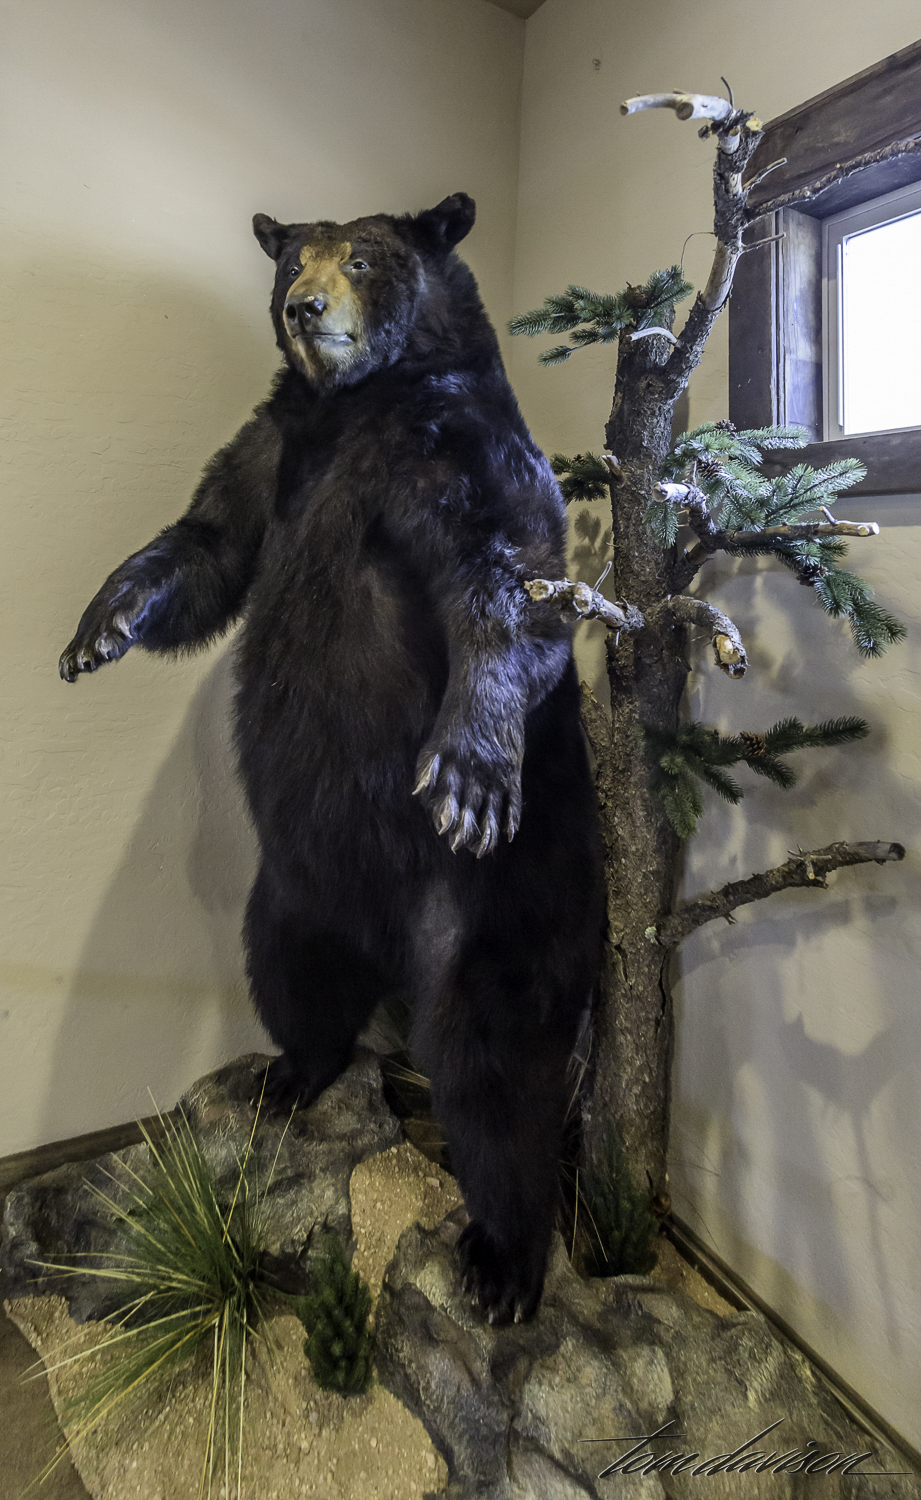 If you are a favorite bear and you die at Bearizona you get to come back and be on display in the gift shop!